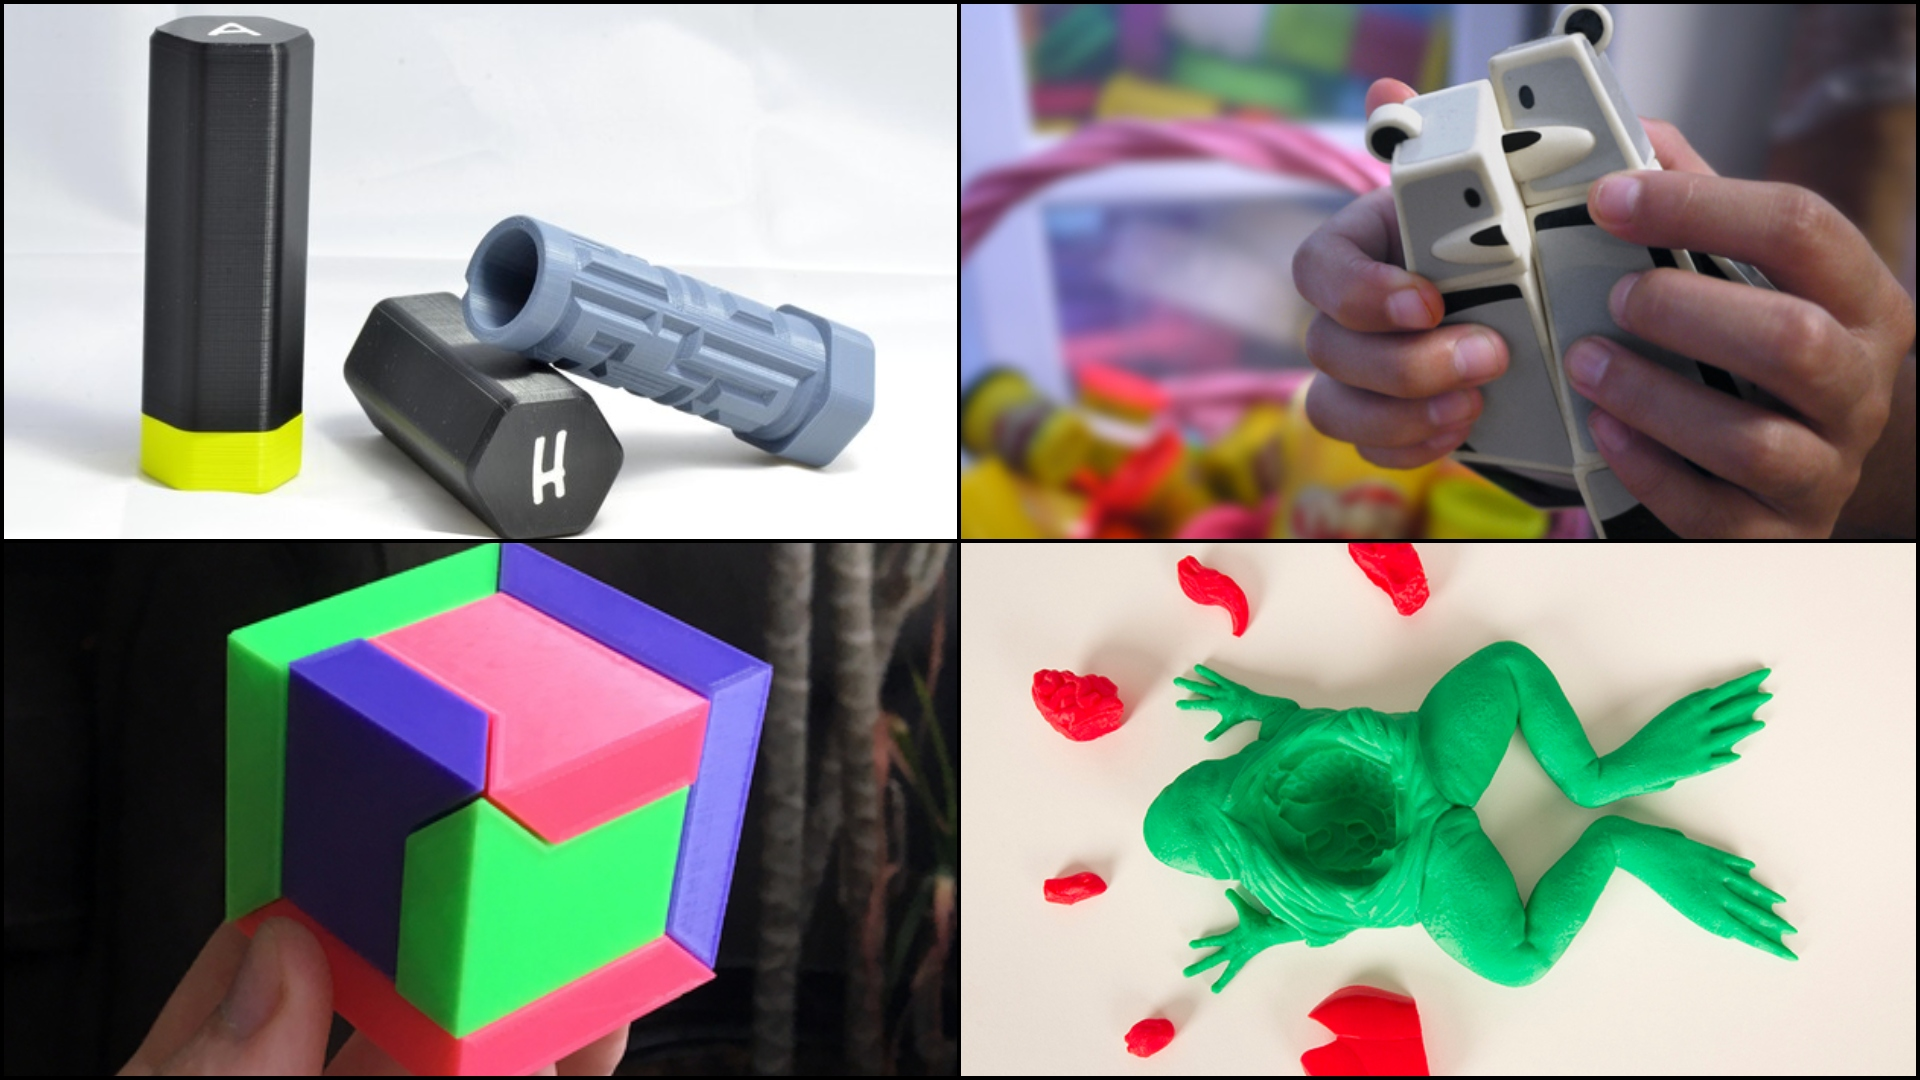 3D Printed Puzzle – 10 Great Curated Models to 3D Print | All3DP